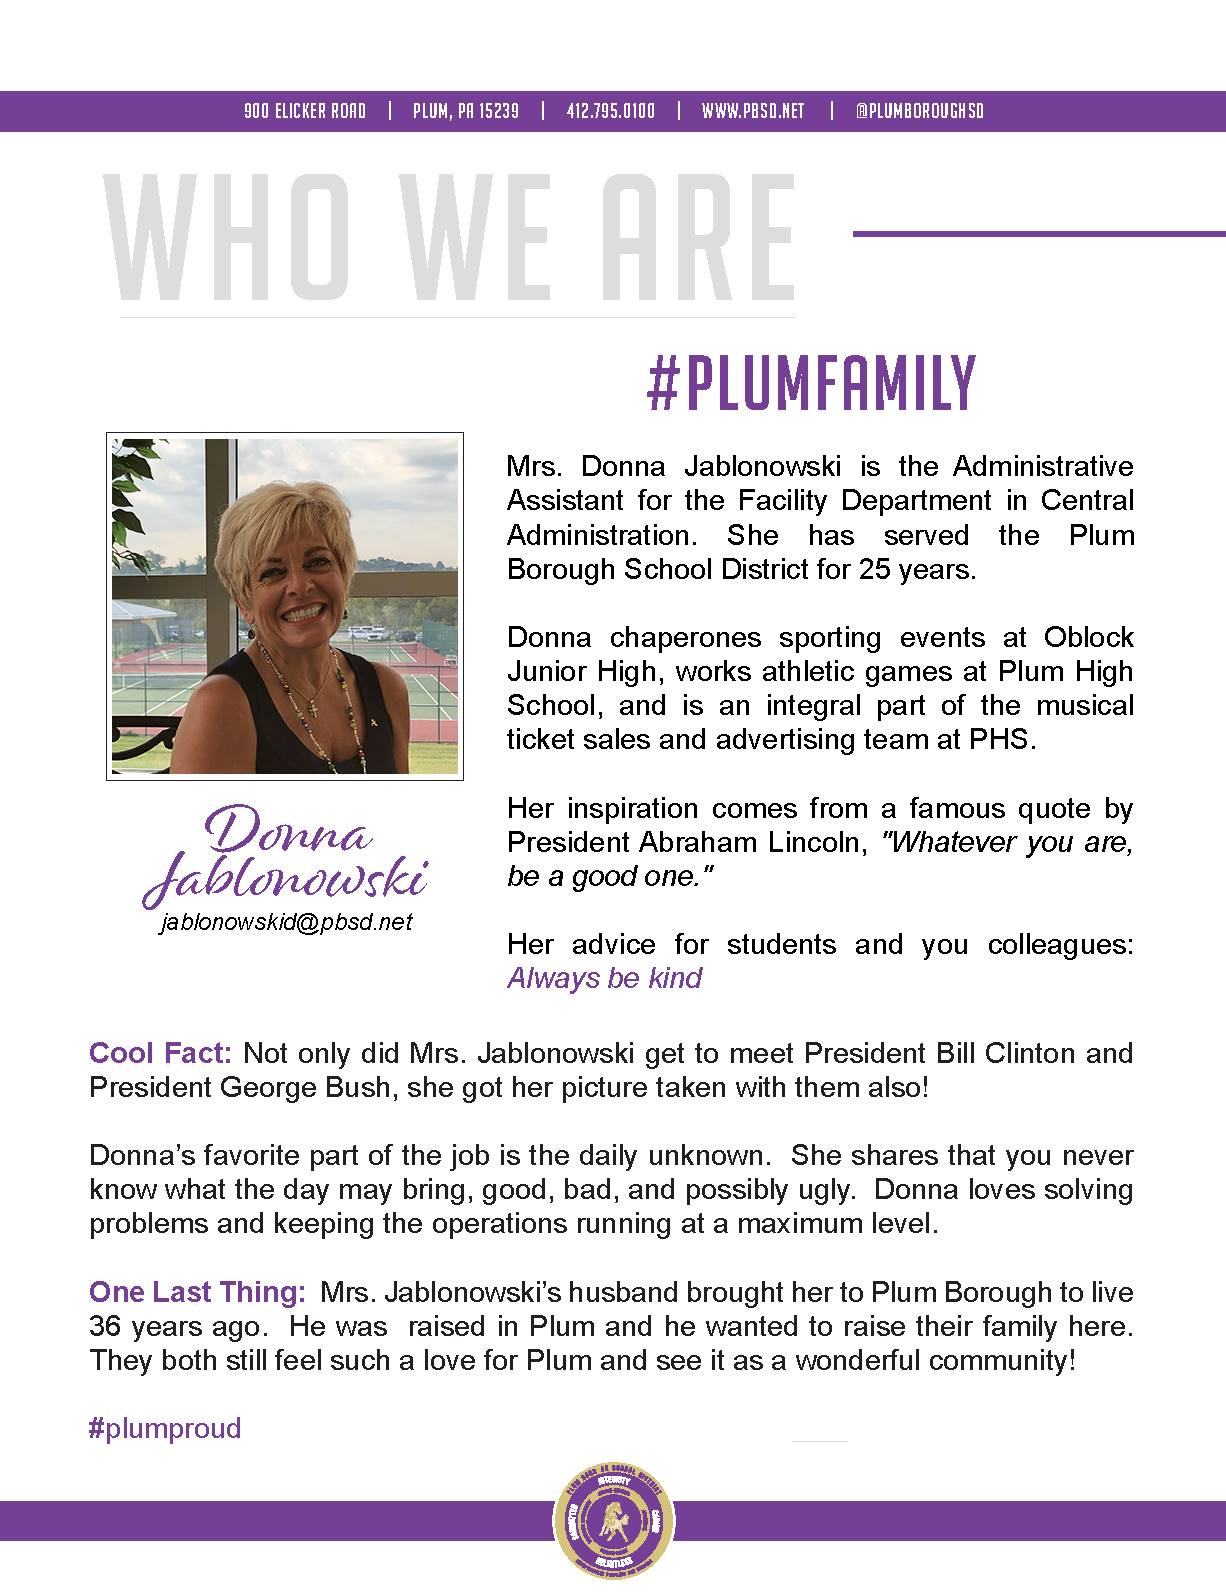 Who We Are Wednesday features Donna Jablonowski.